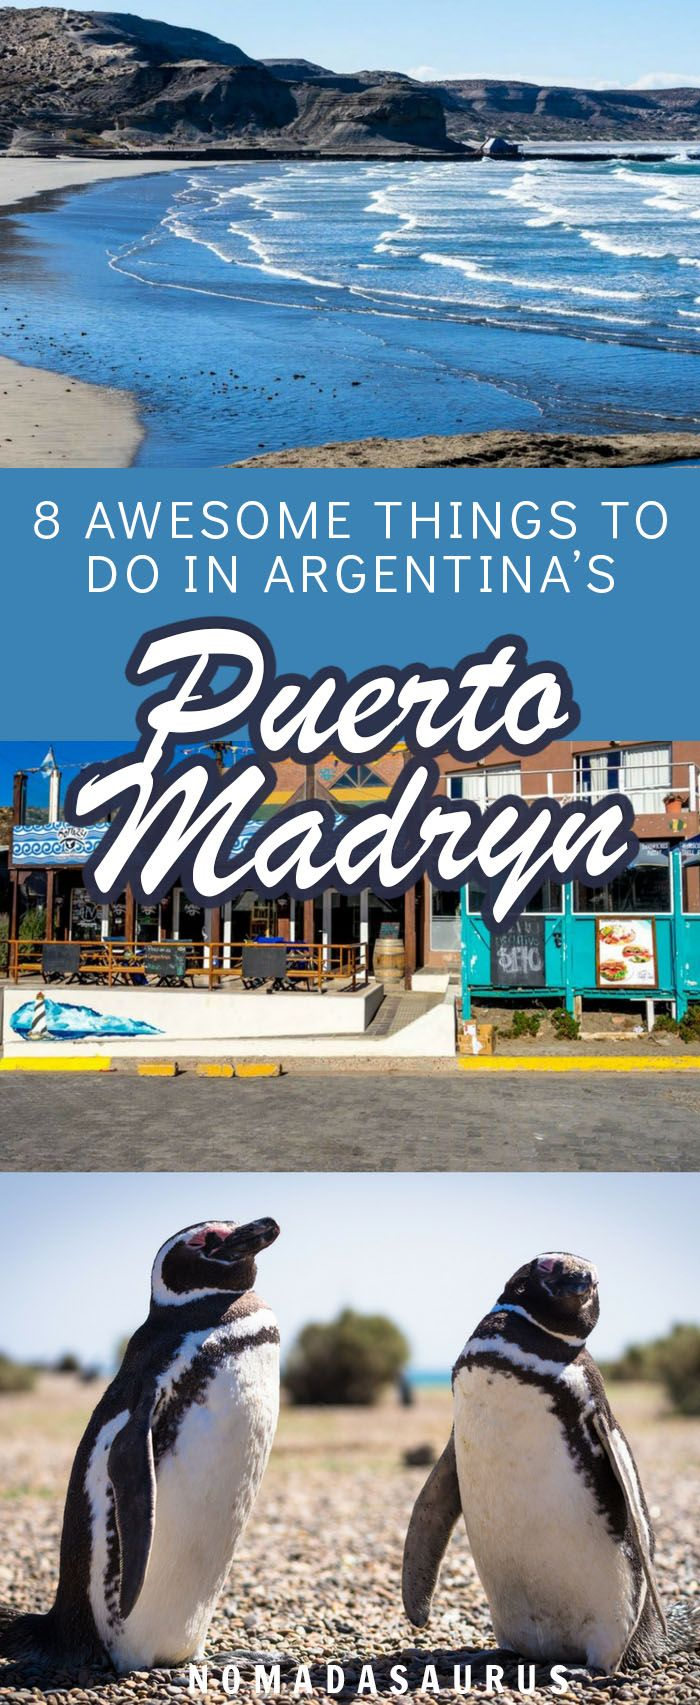 Here are all the best things to do in Puerto Madryn, a little town in Argentina's Patagonia area. #argentina #puertomadryn